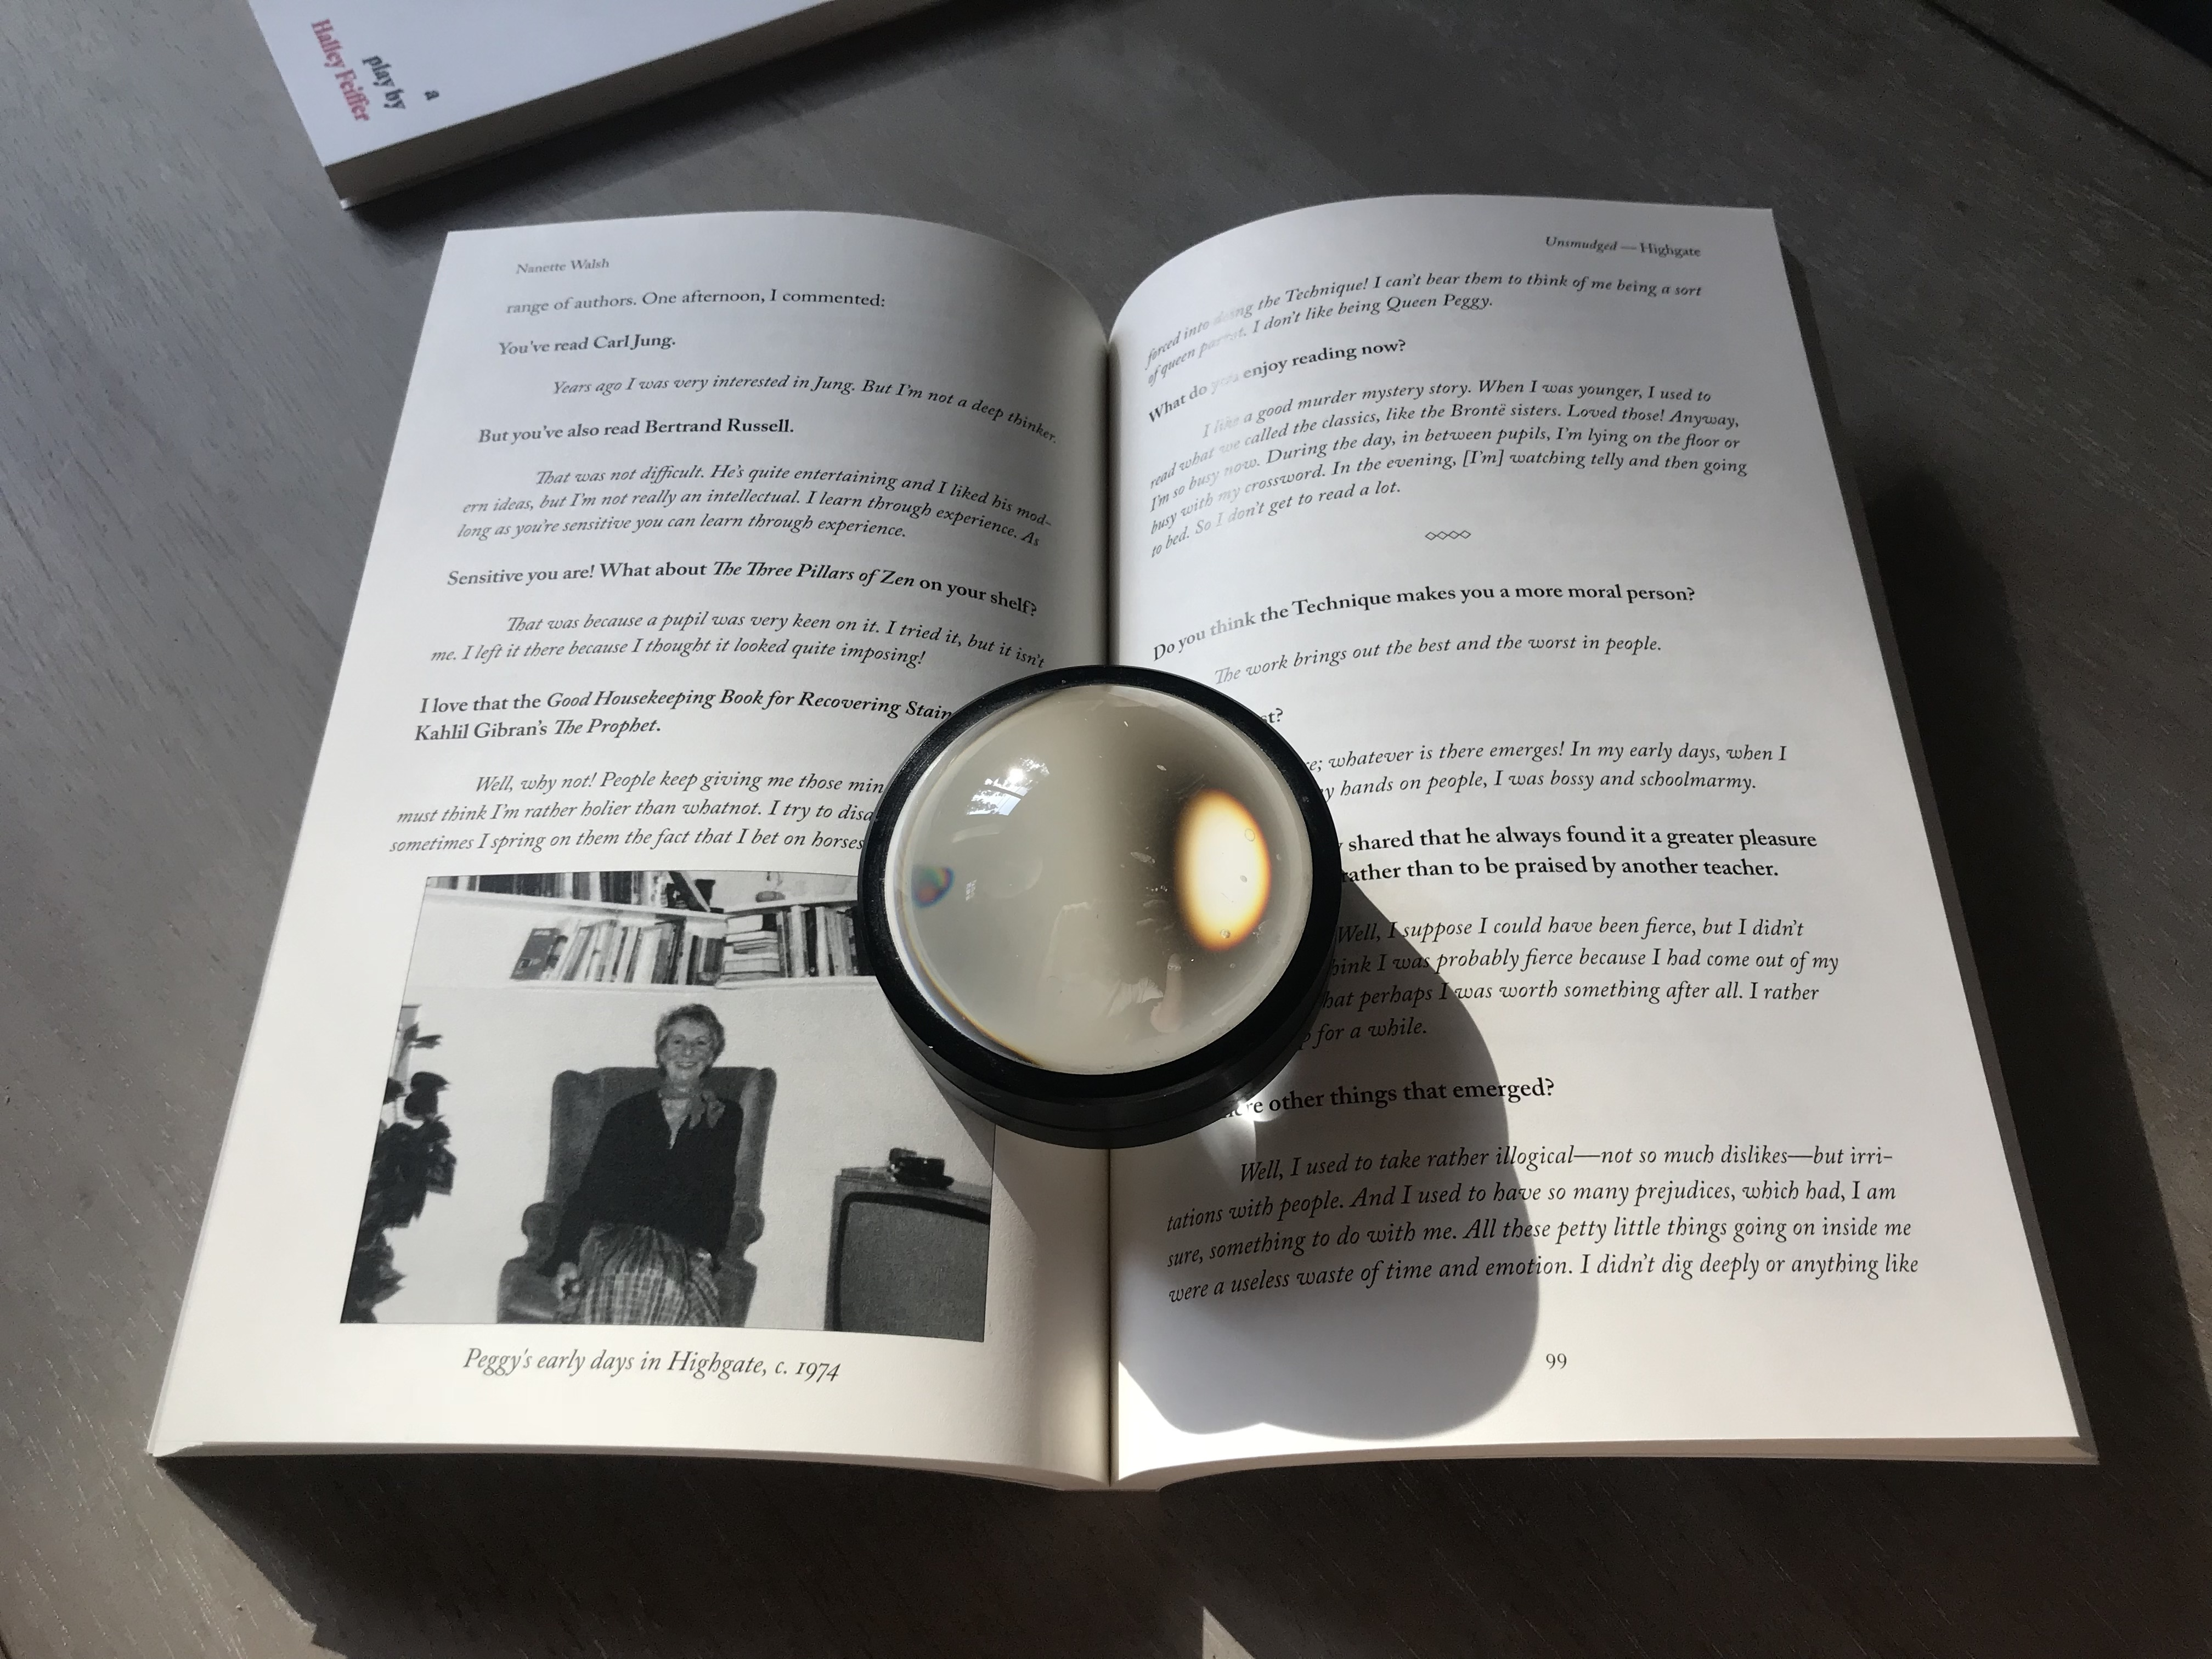 Book Interior of Unsmudged by Nanette Walsh